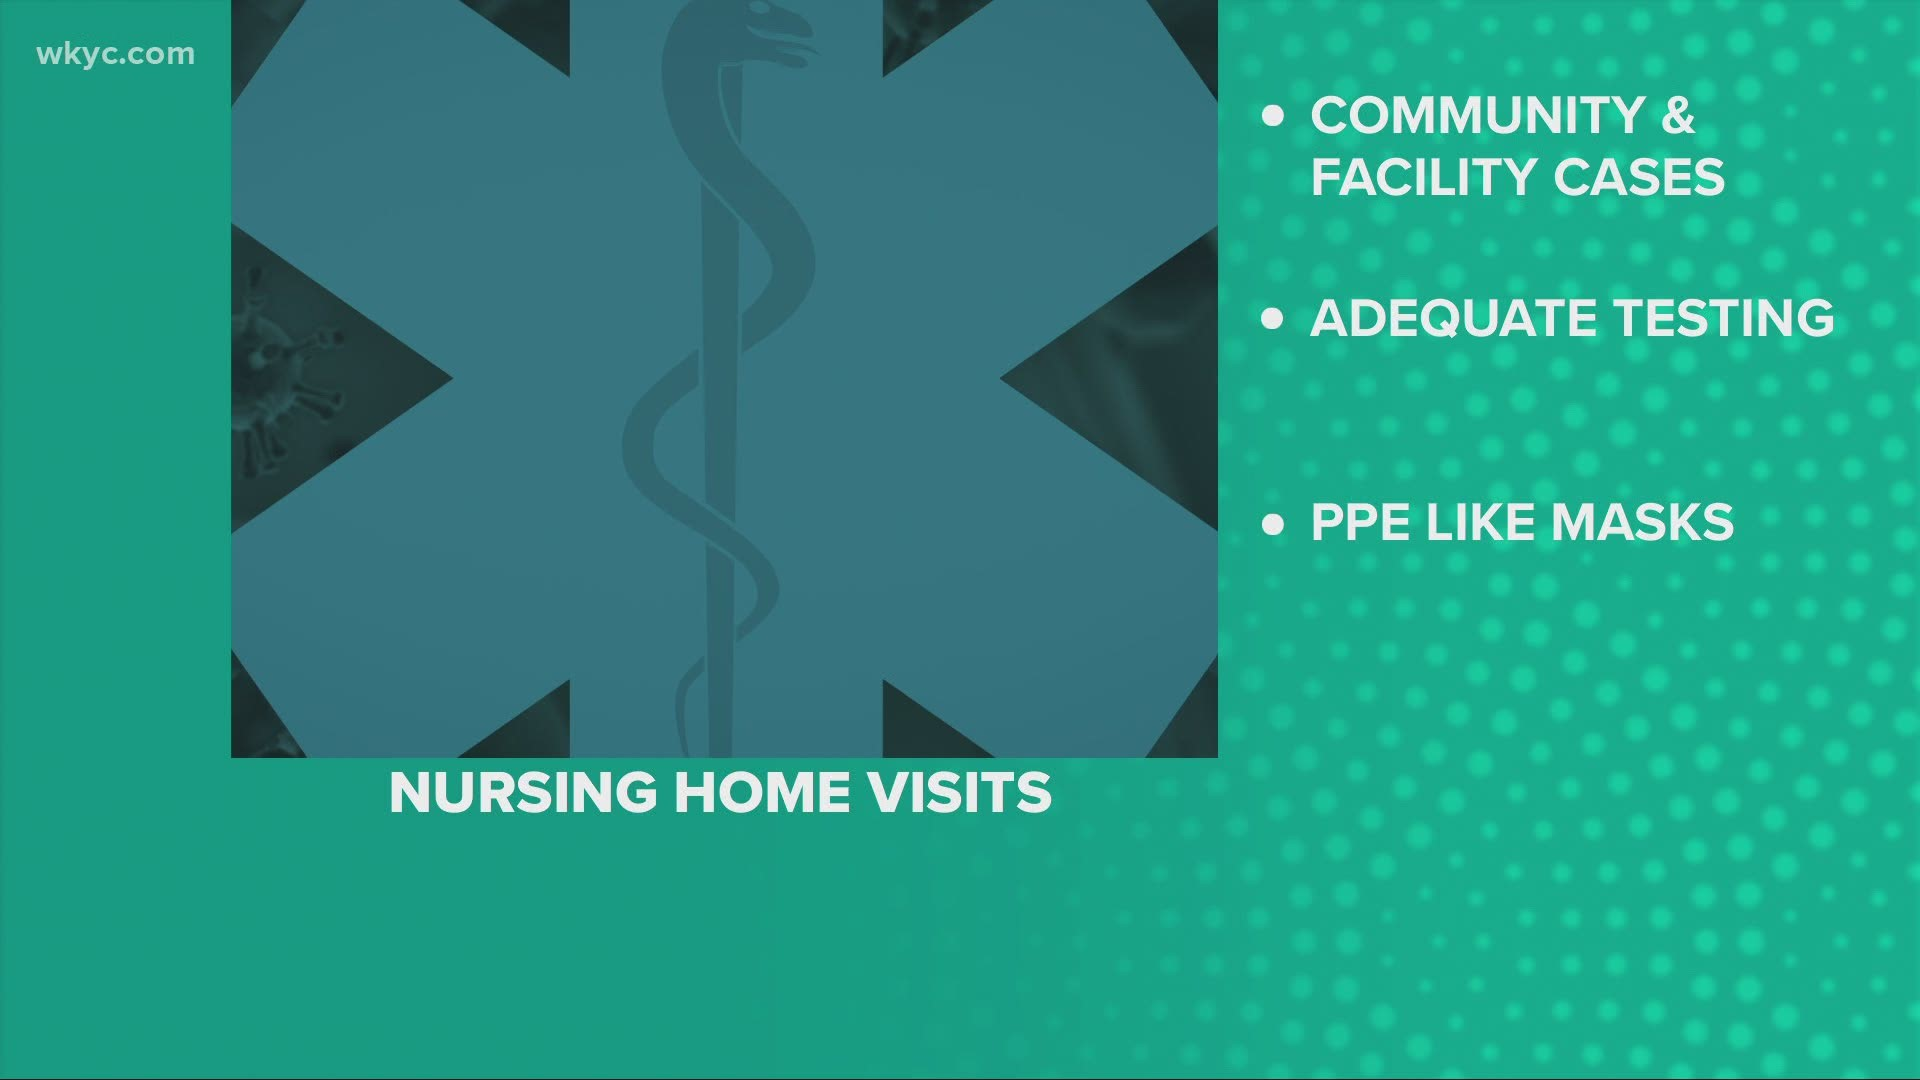 Gov. Mike DeWine announces Ohio's nursing homes can have outdoor visitation starting July 20